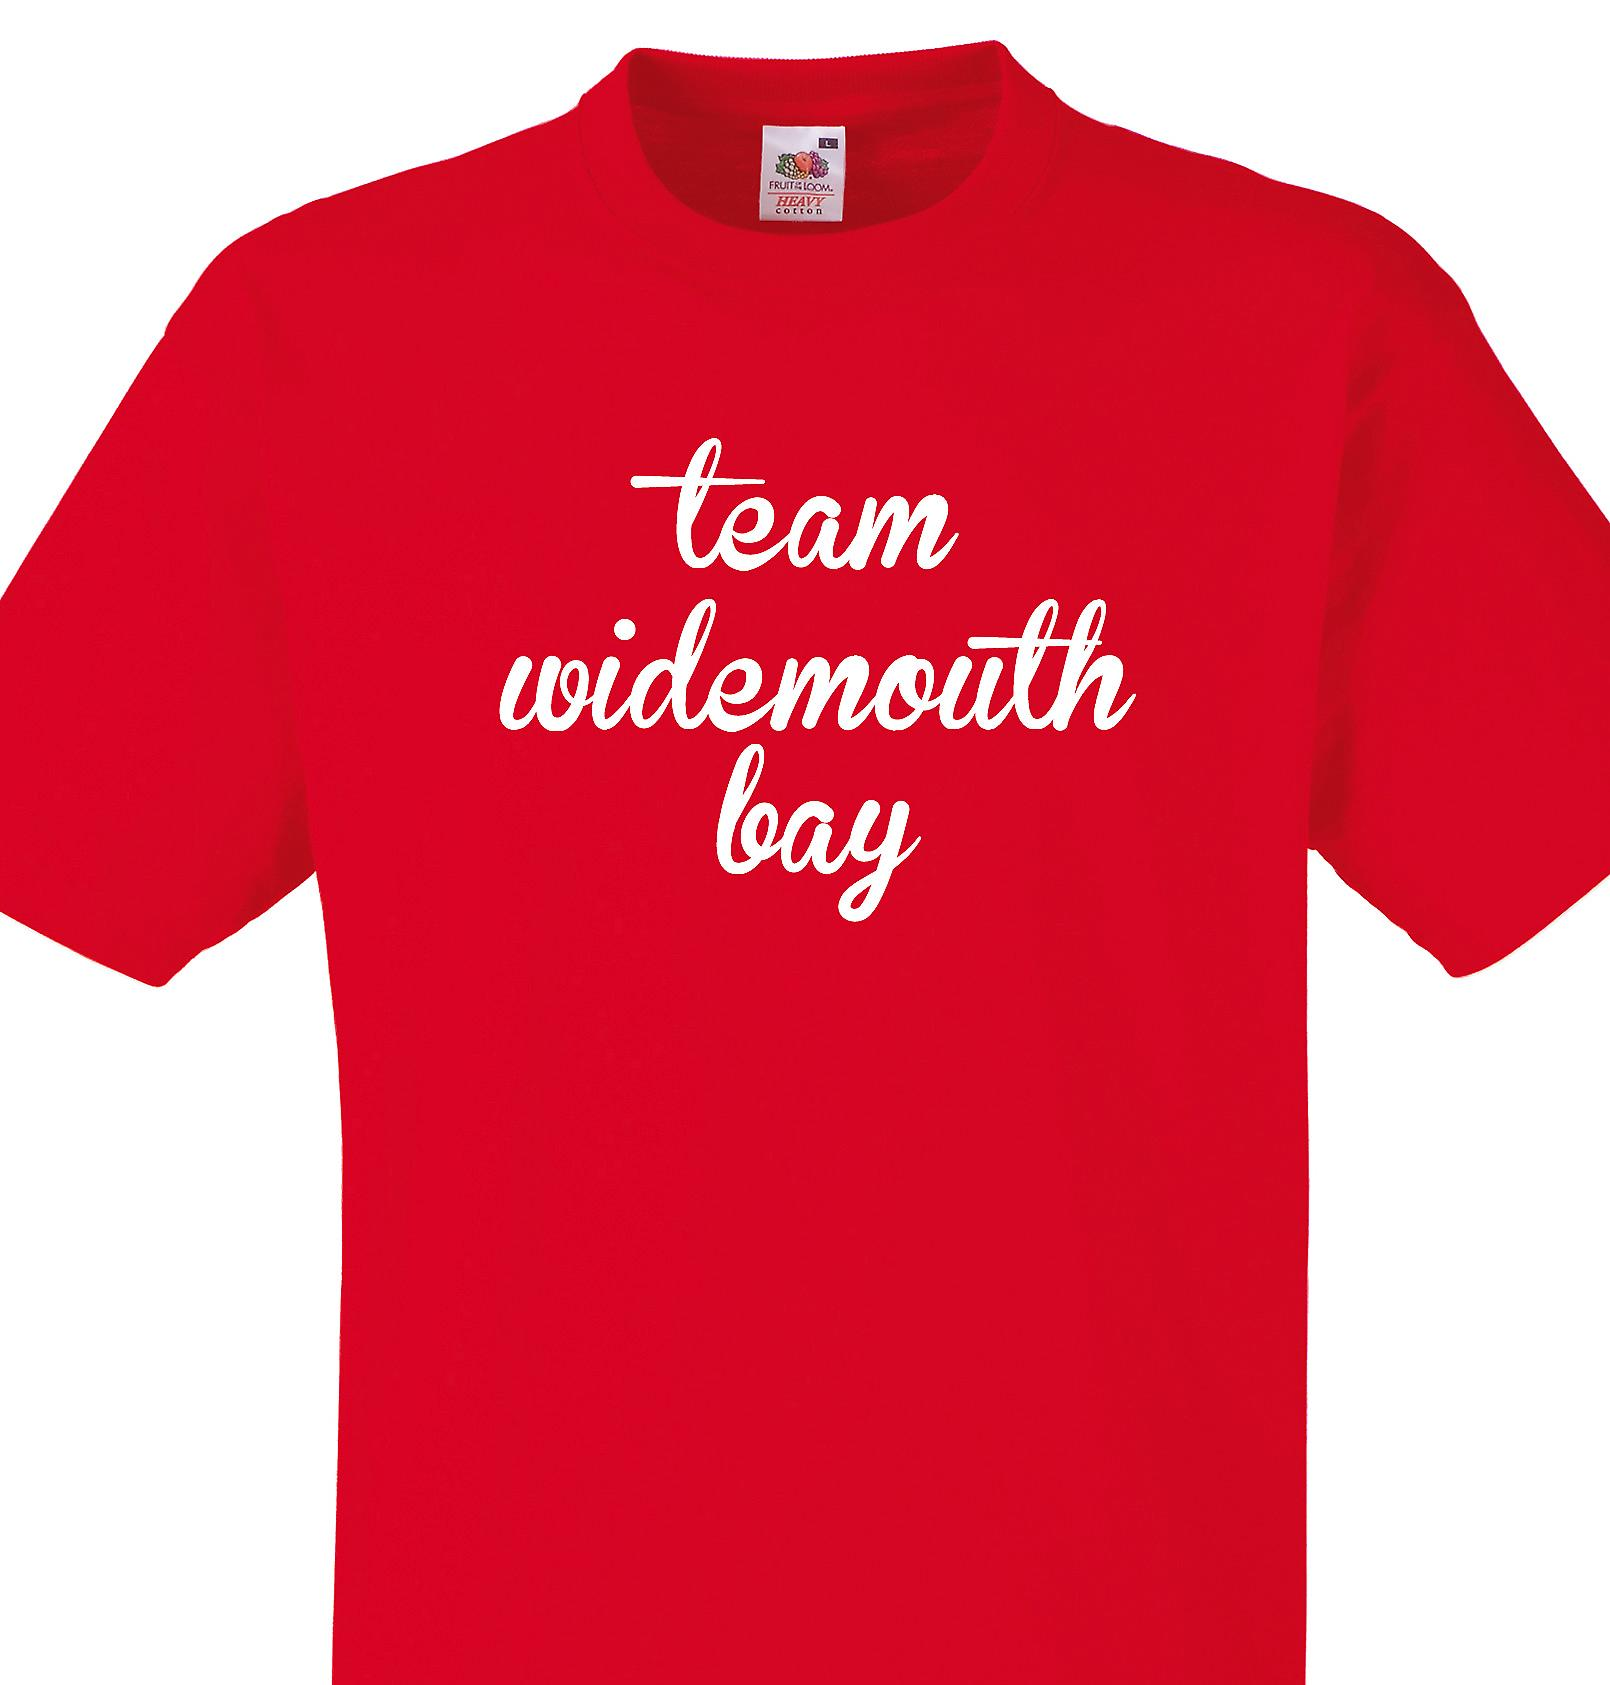 Team Widemouth bay Red T shirt